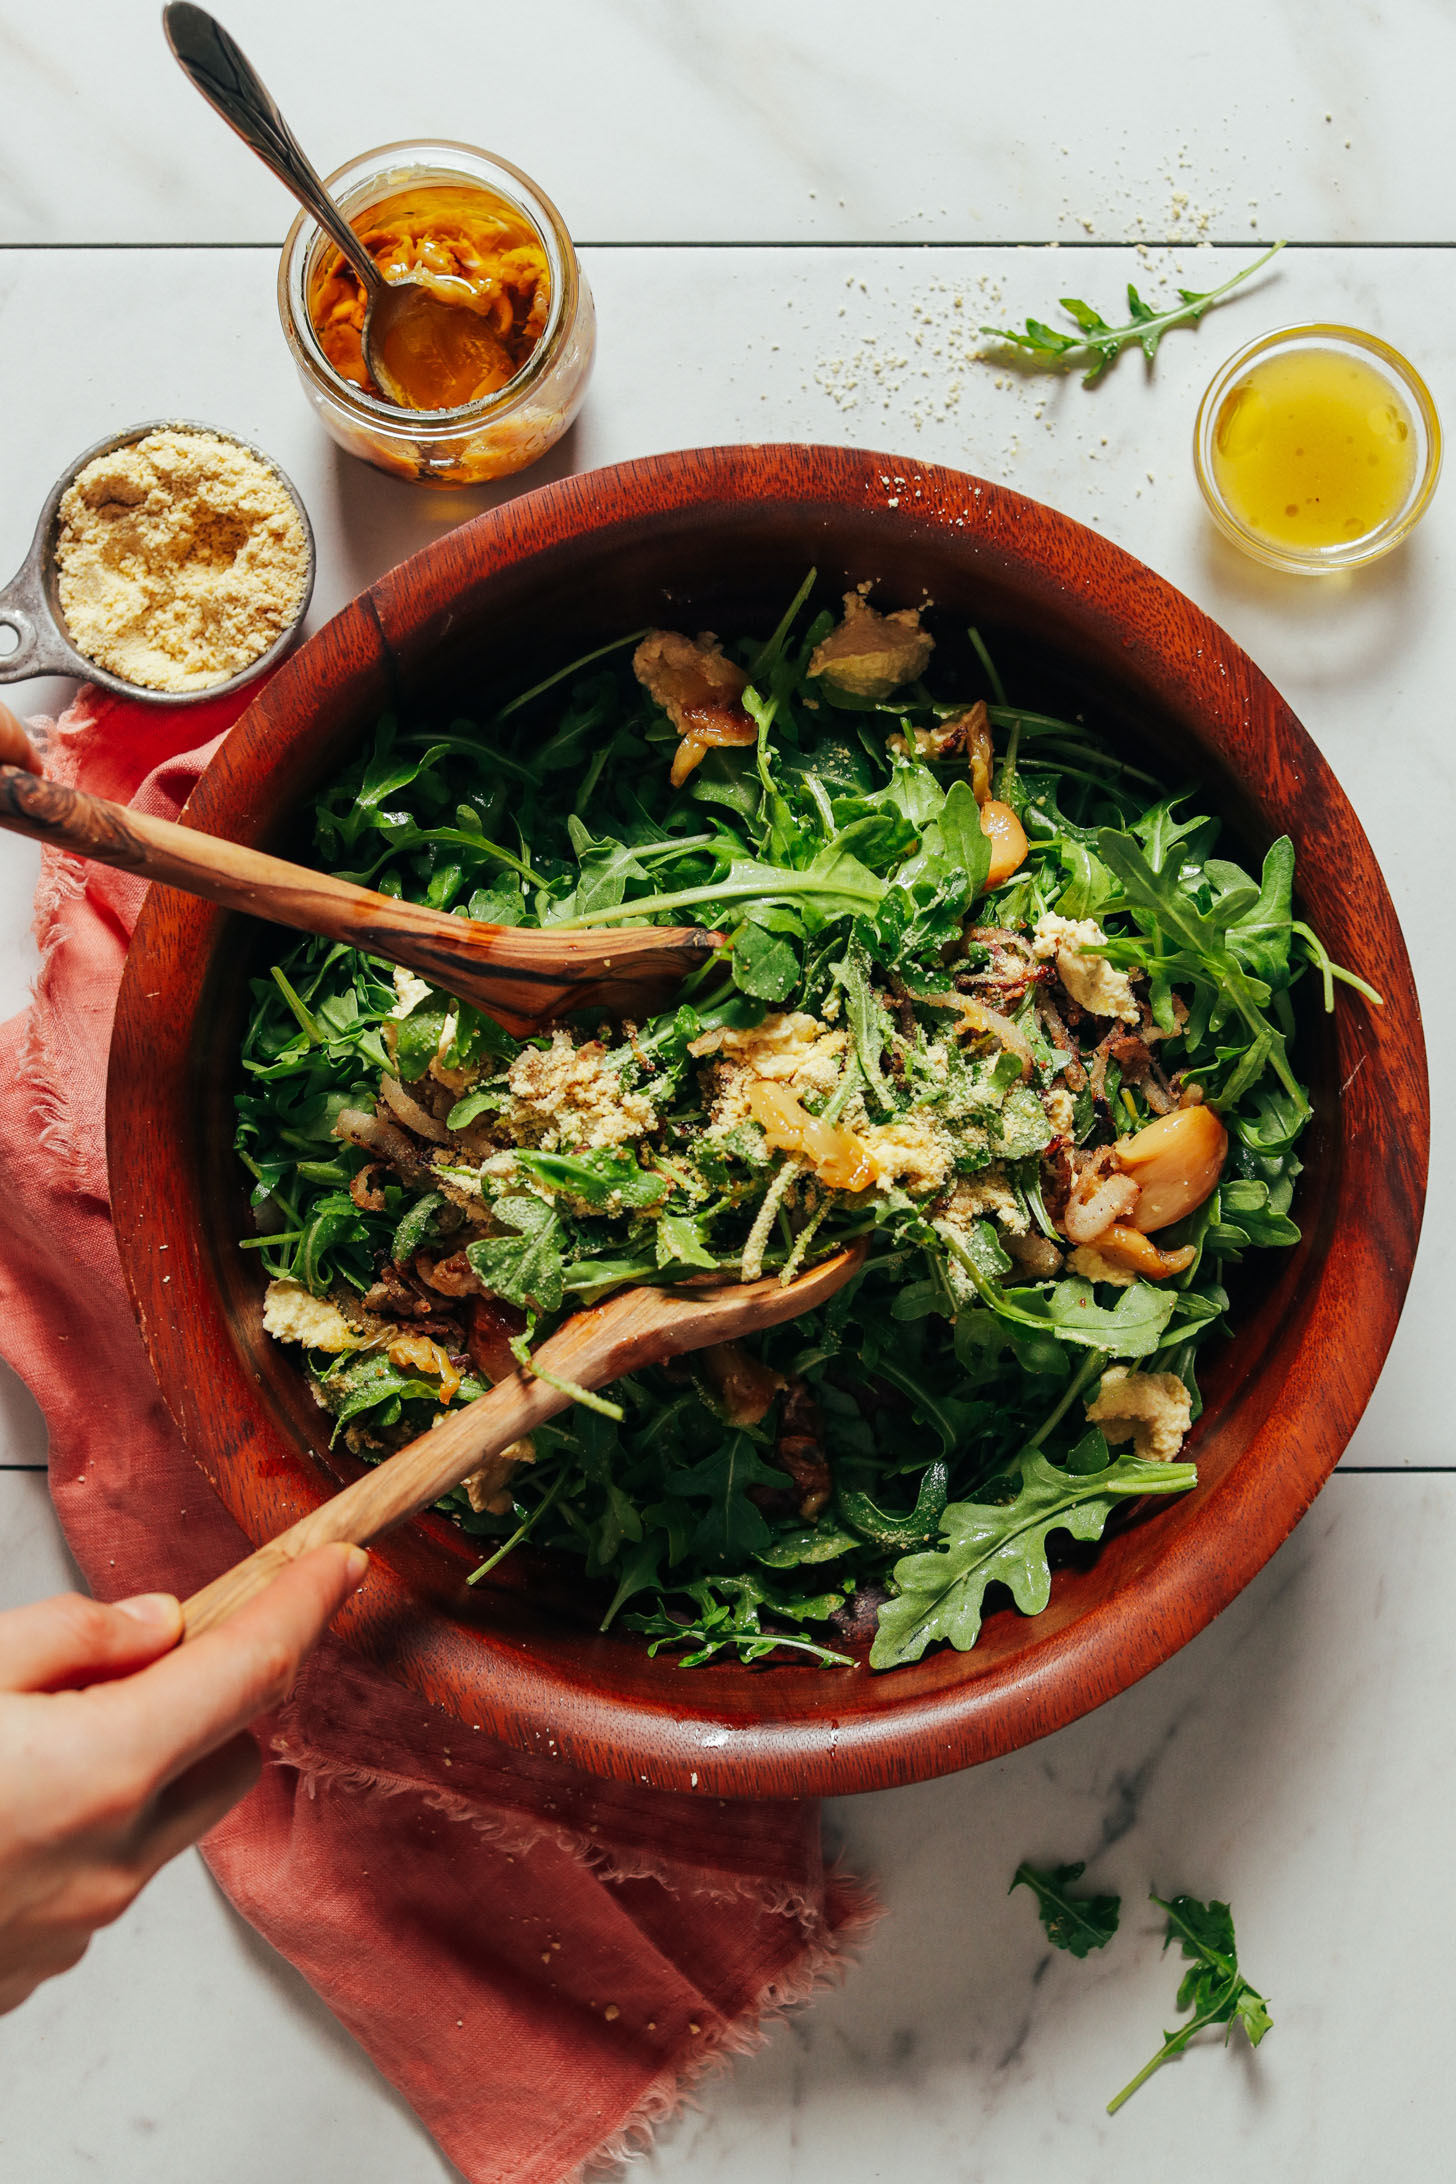 Big bowl of our Lemony Arugula Salad recipe made with crispy shallots and nut cheese